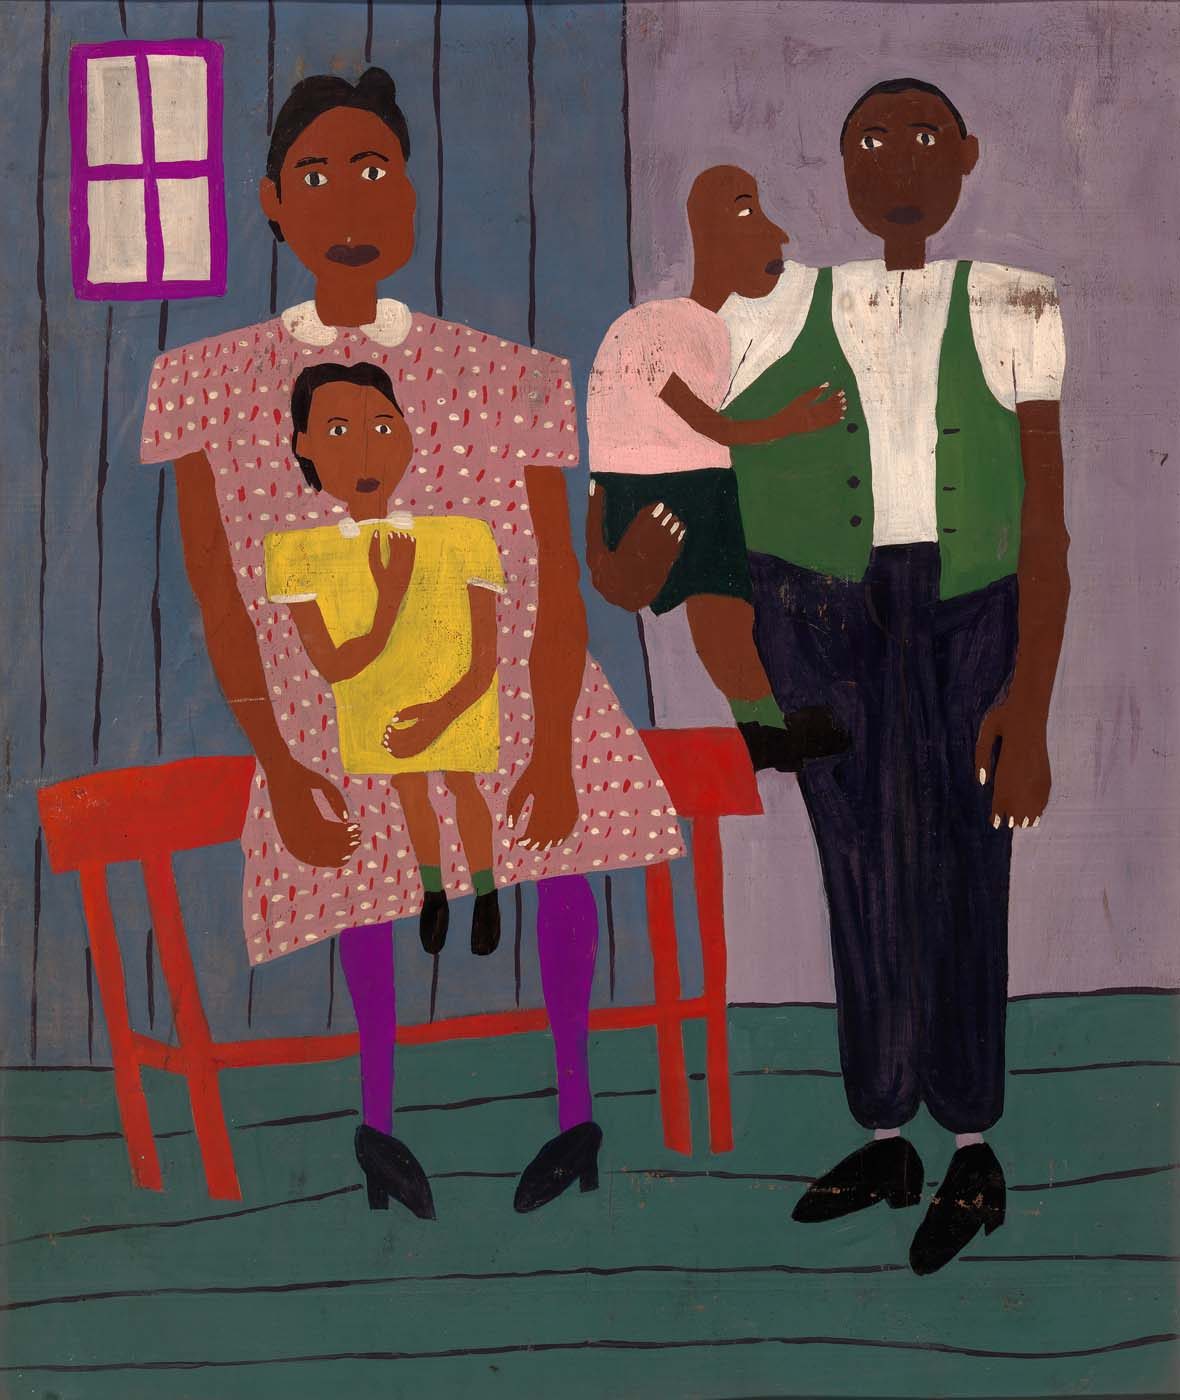 william h johnson Johnson, william henry (1901-1970) the art and life of william h johnson (washington, dc: national museum of american art, smithsonian institution.